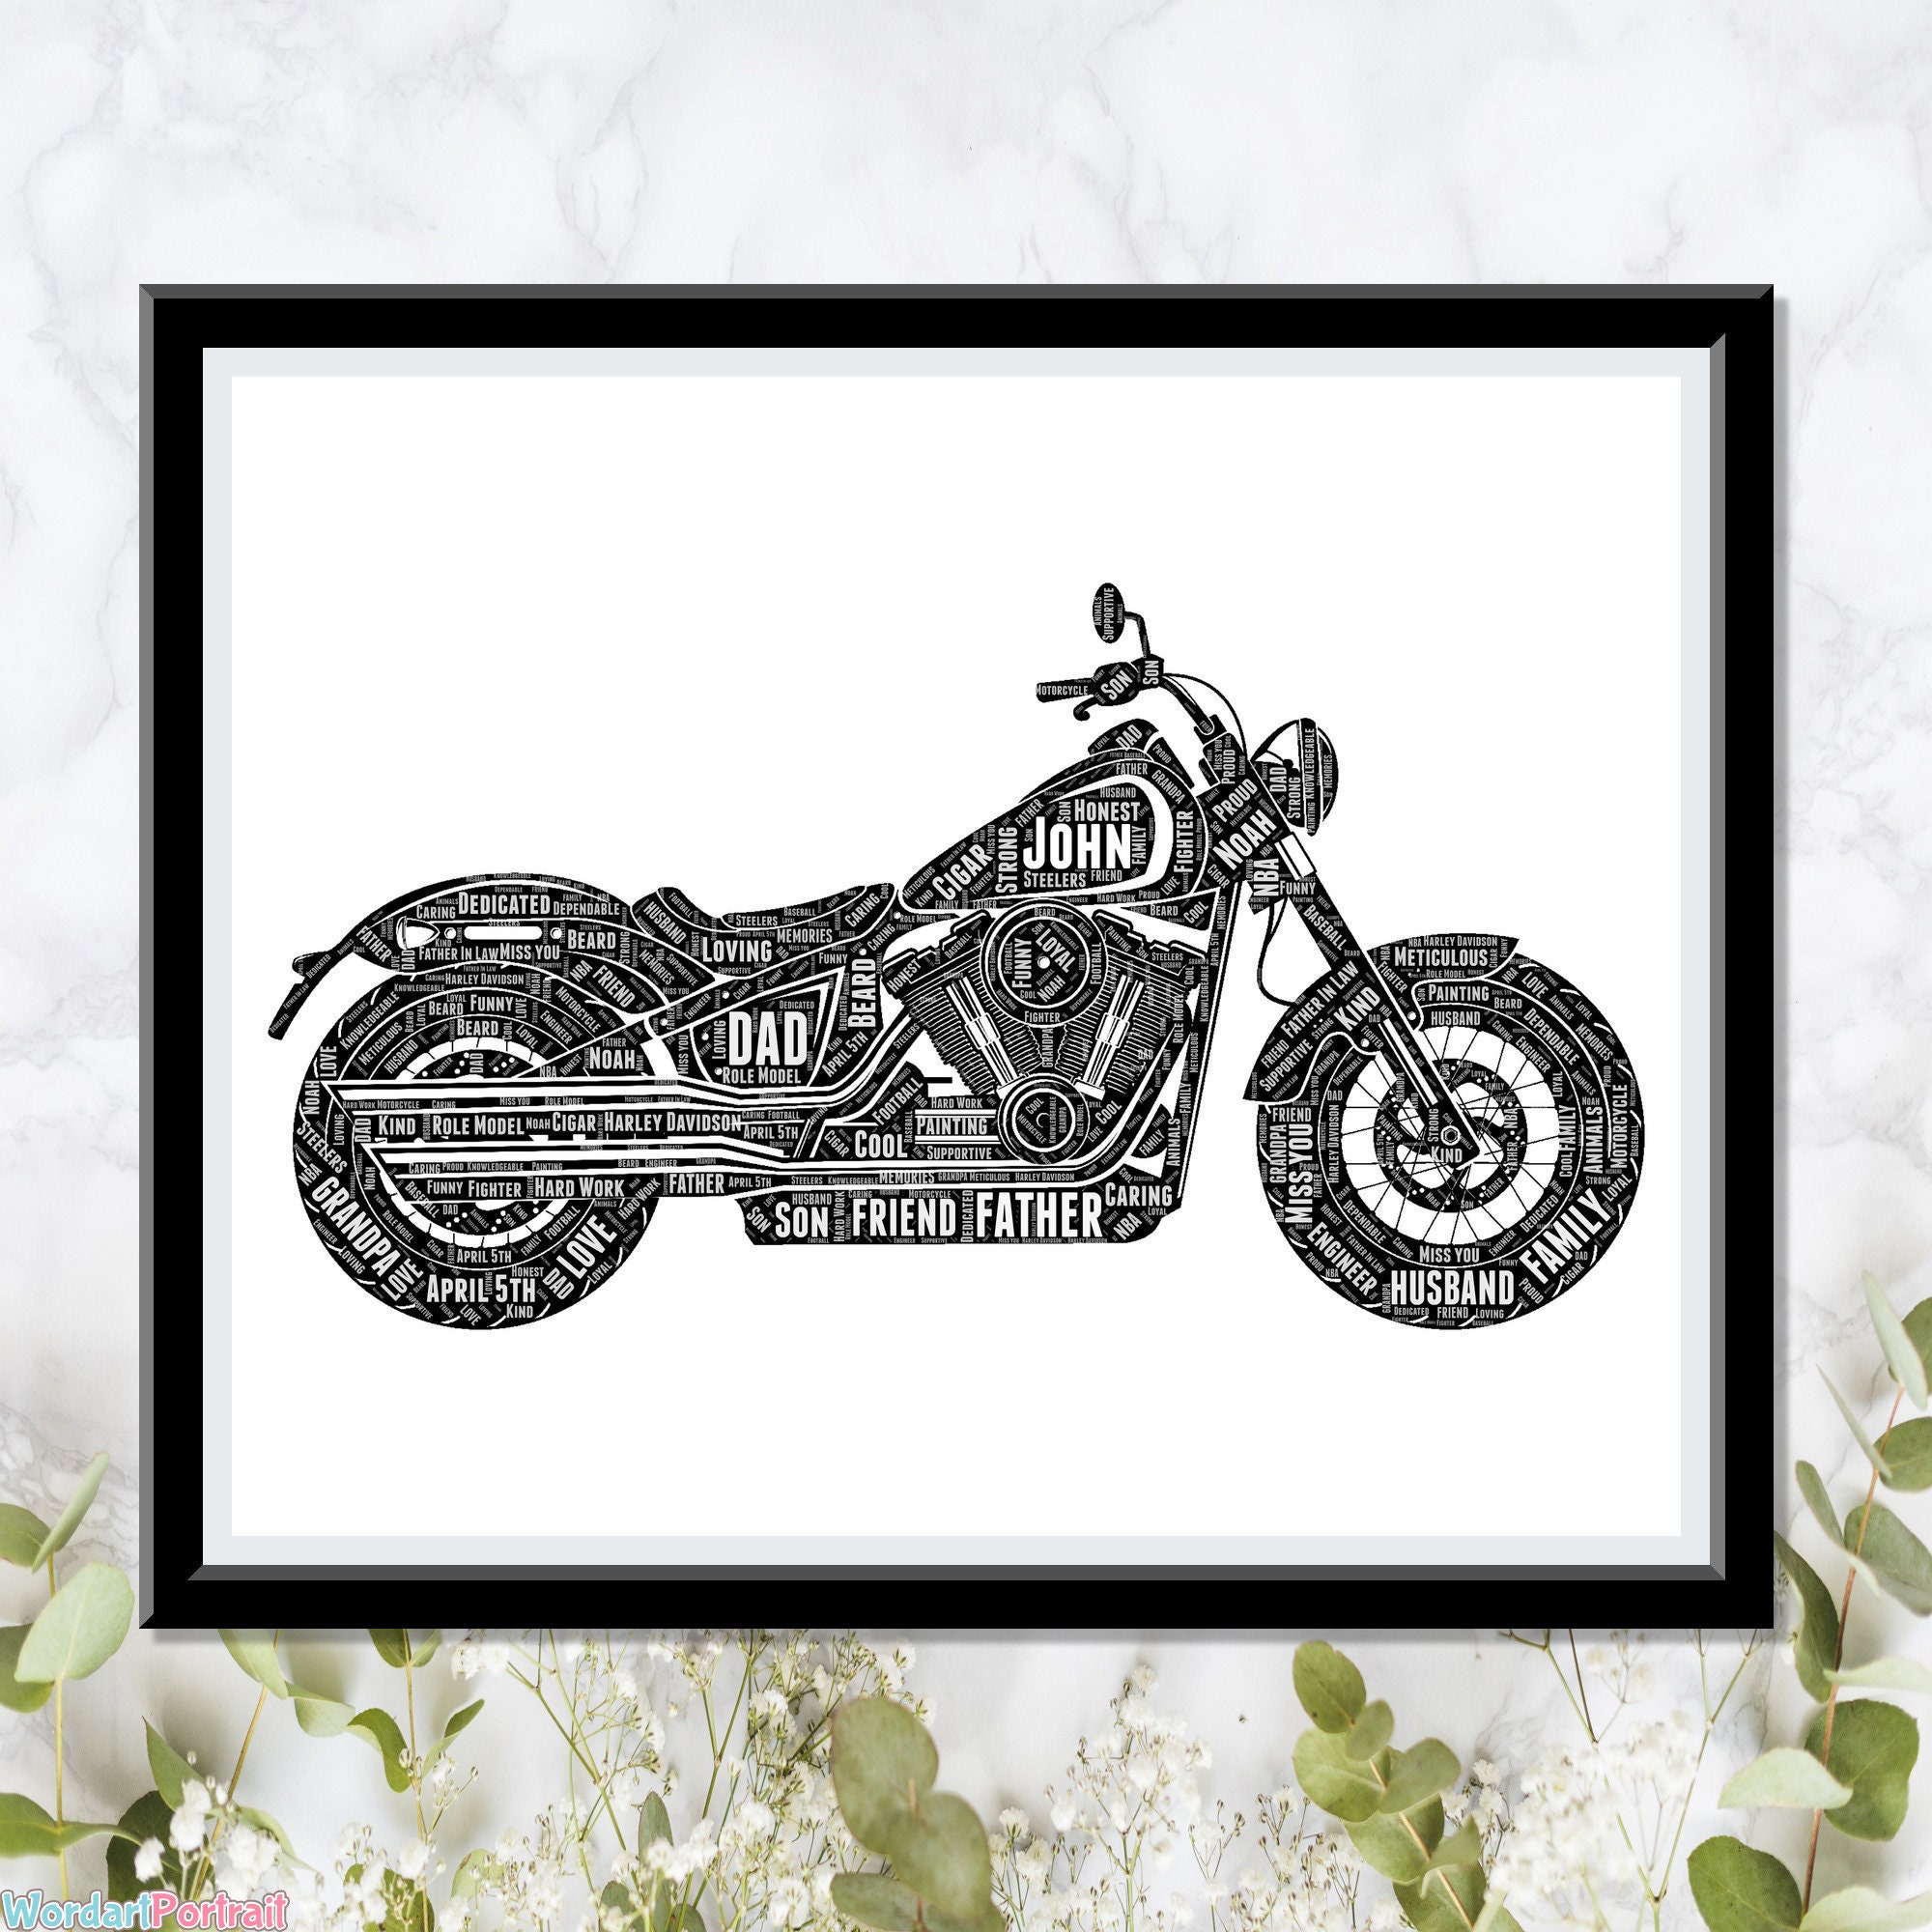 Harley Davidson Gift- Harley Davidson Print- Motorcycle Personalize Gift - Picture Wall Art Print - Dad Gifts For Him Rider Racer Word Cloud